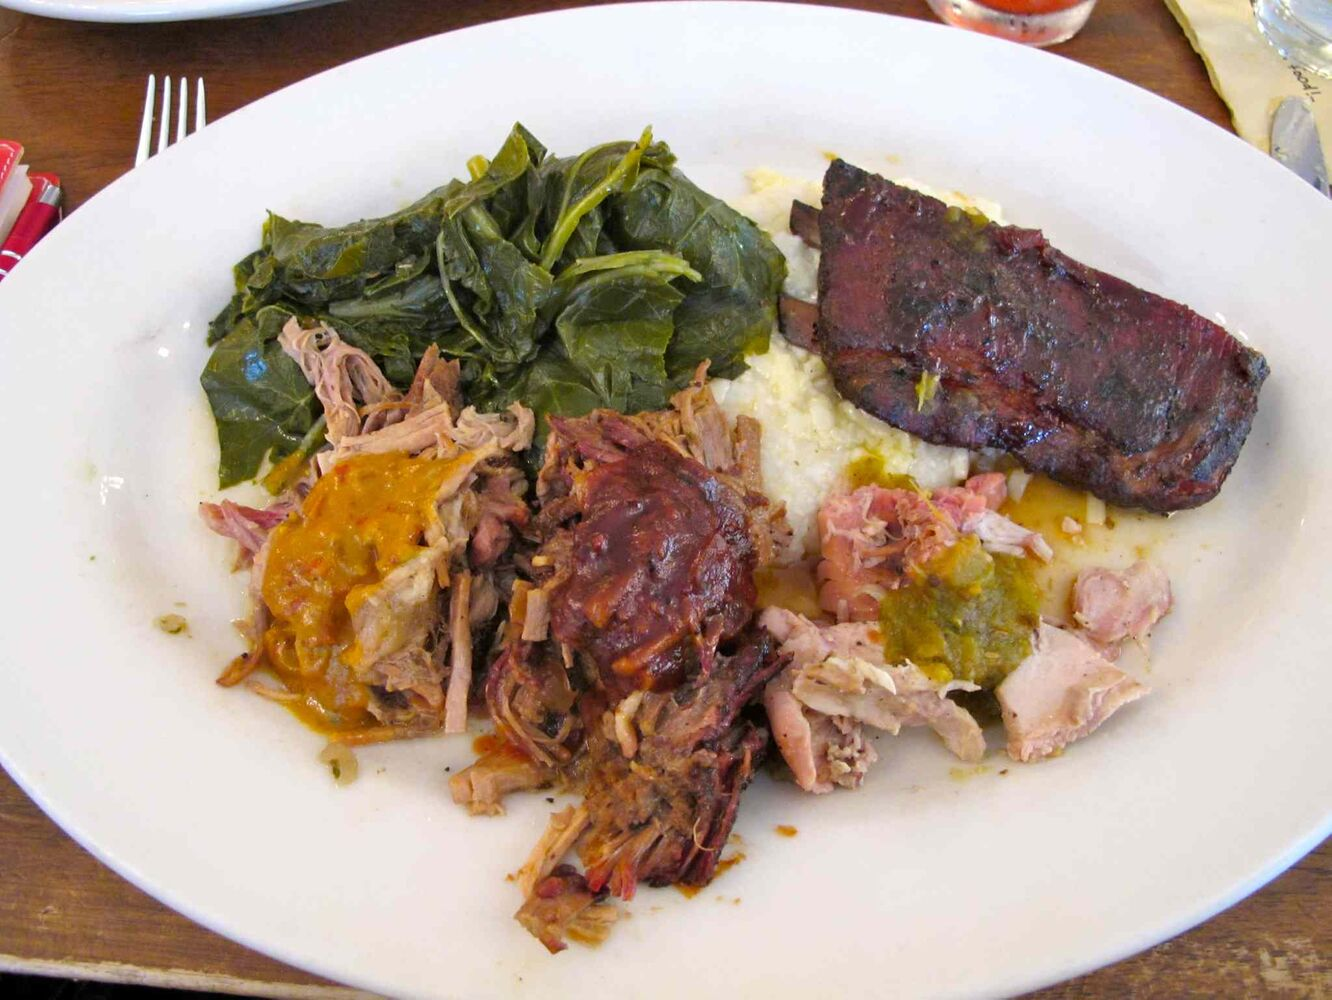 Barbecue tasting menu at Zingerman's Roadhouse.